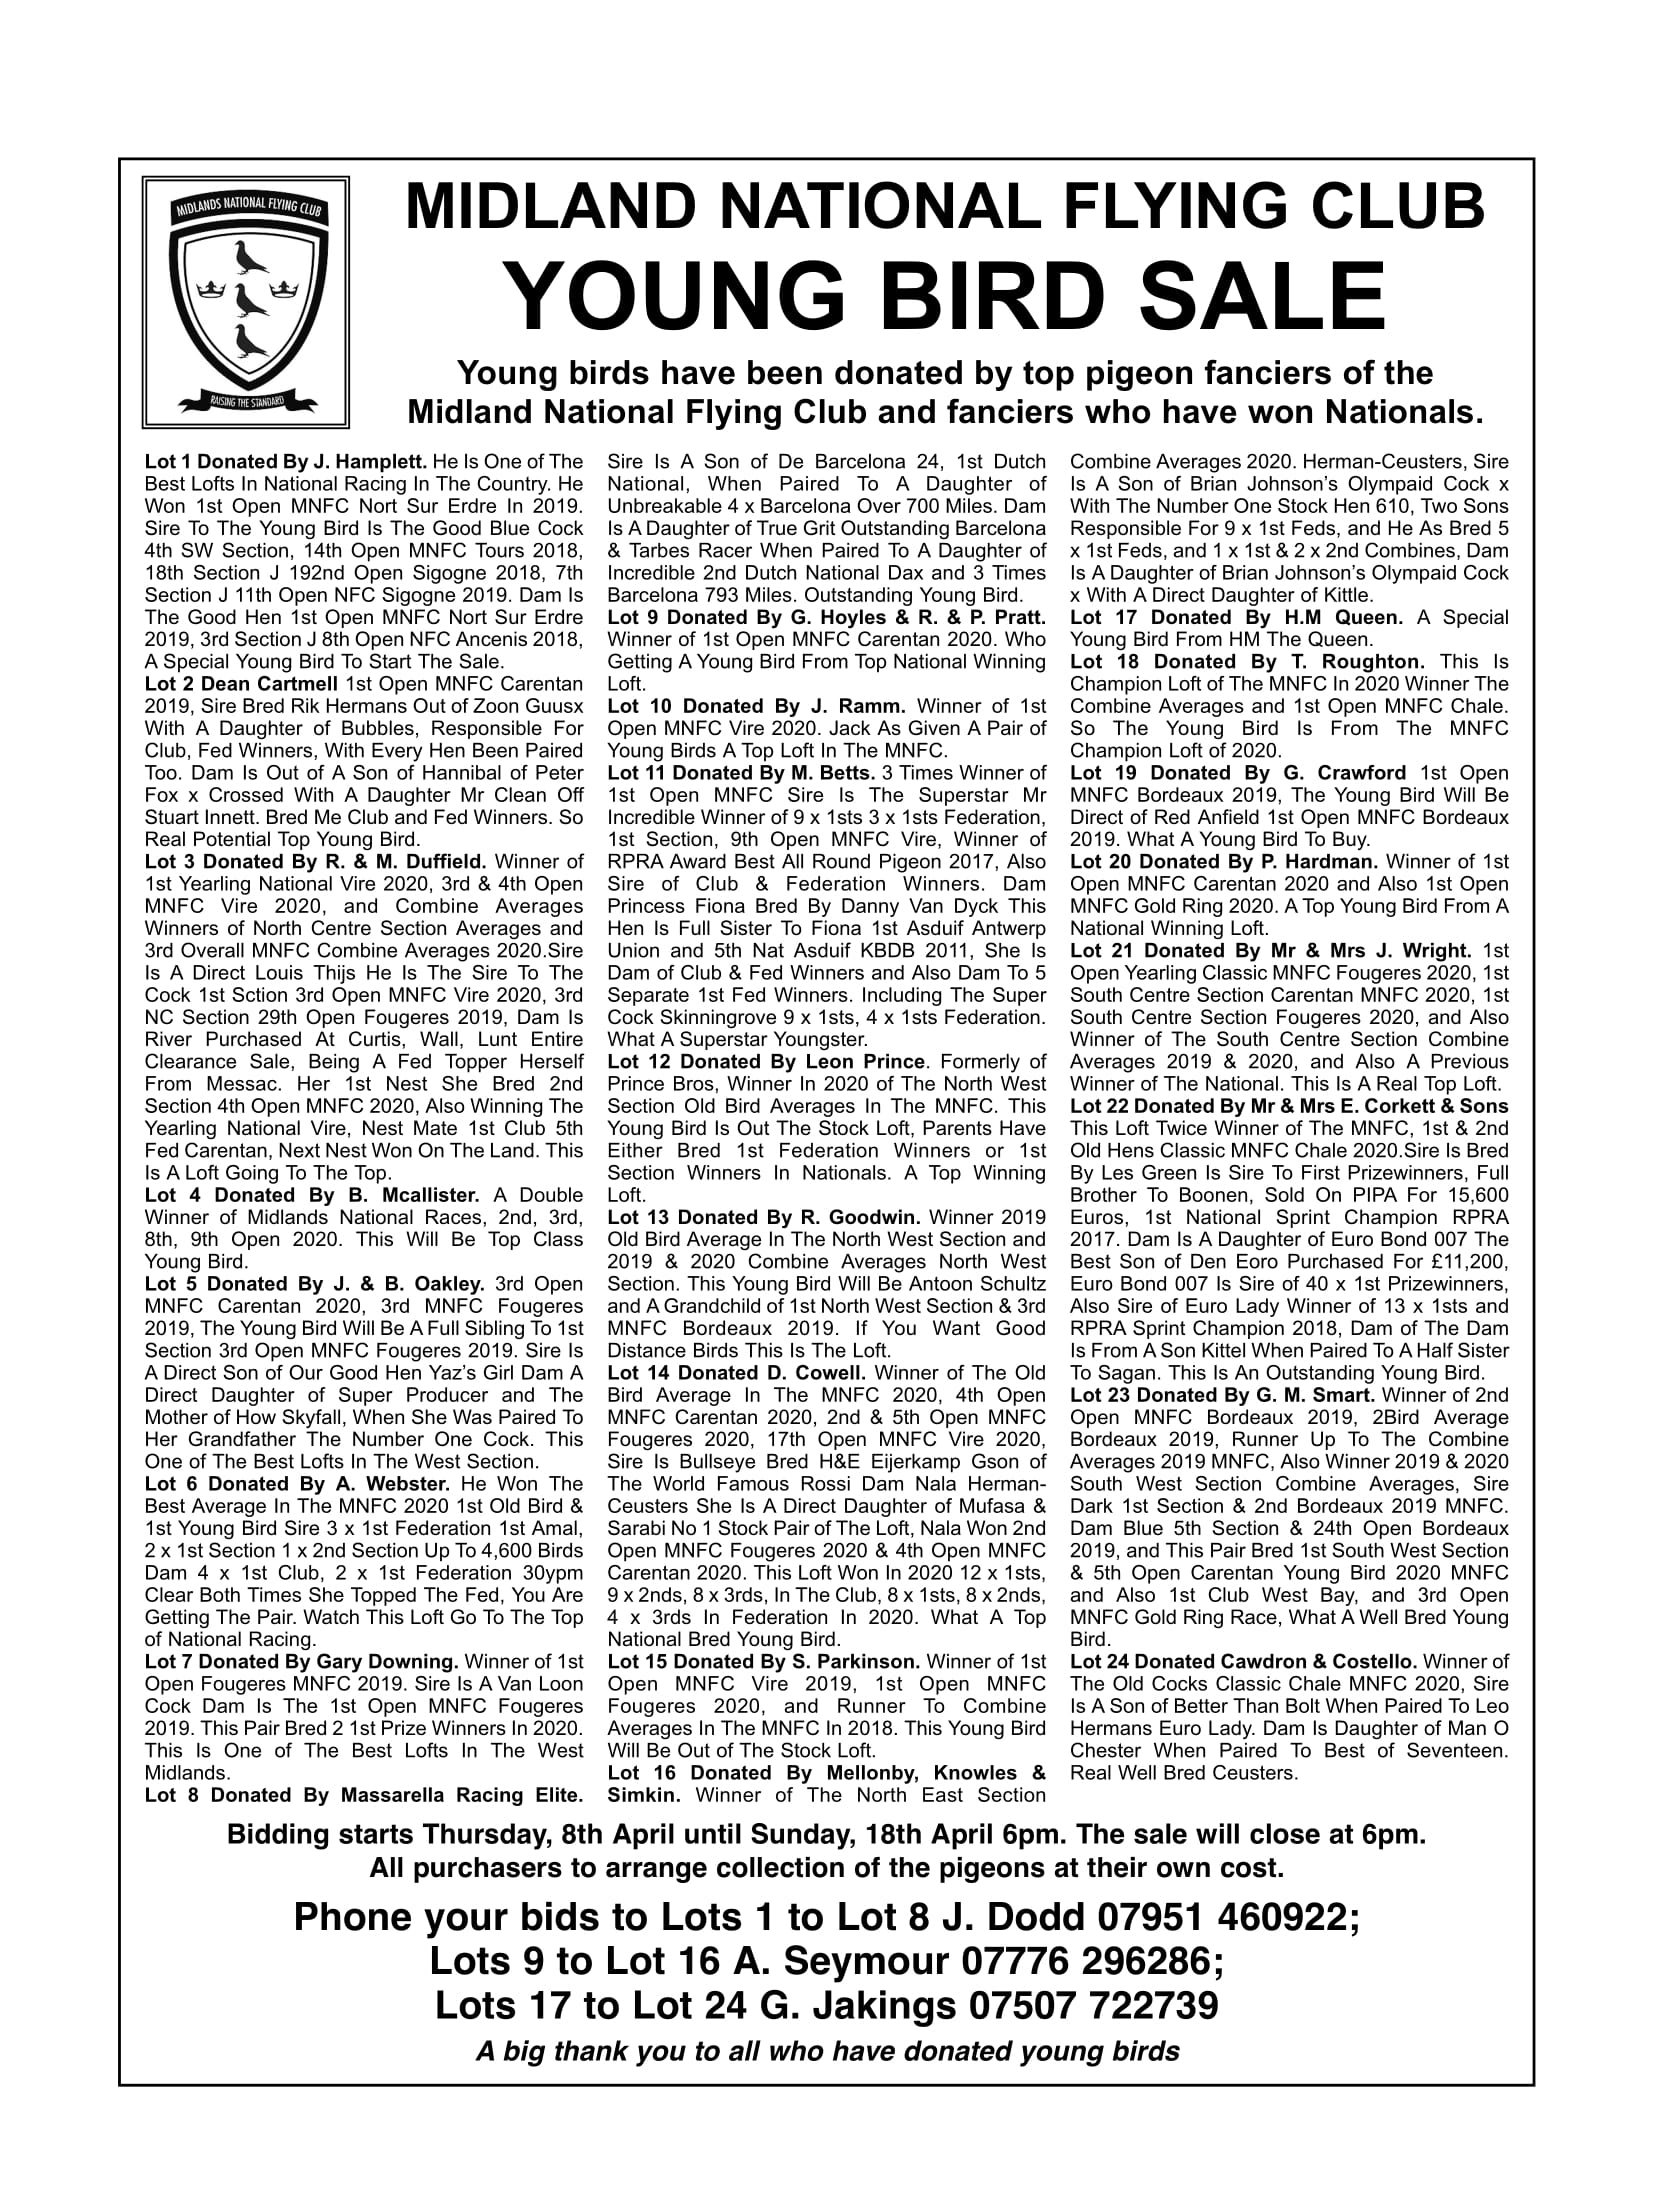 MNFC Young Bird Sale 1p 1